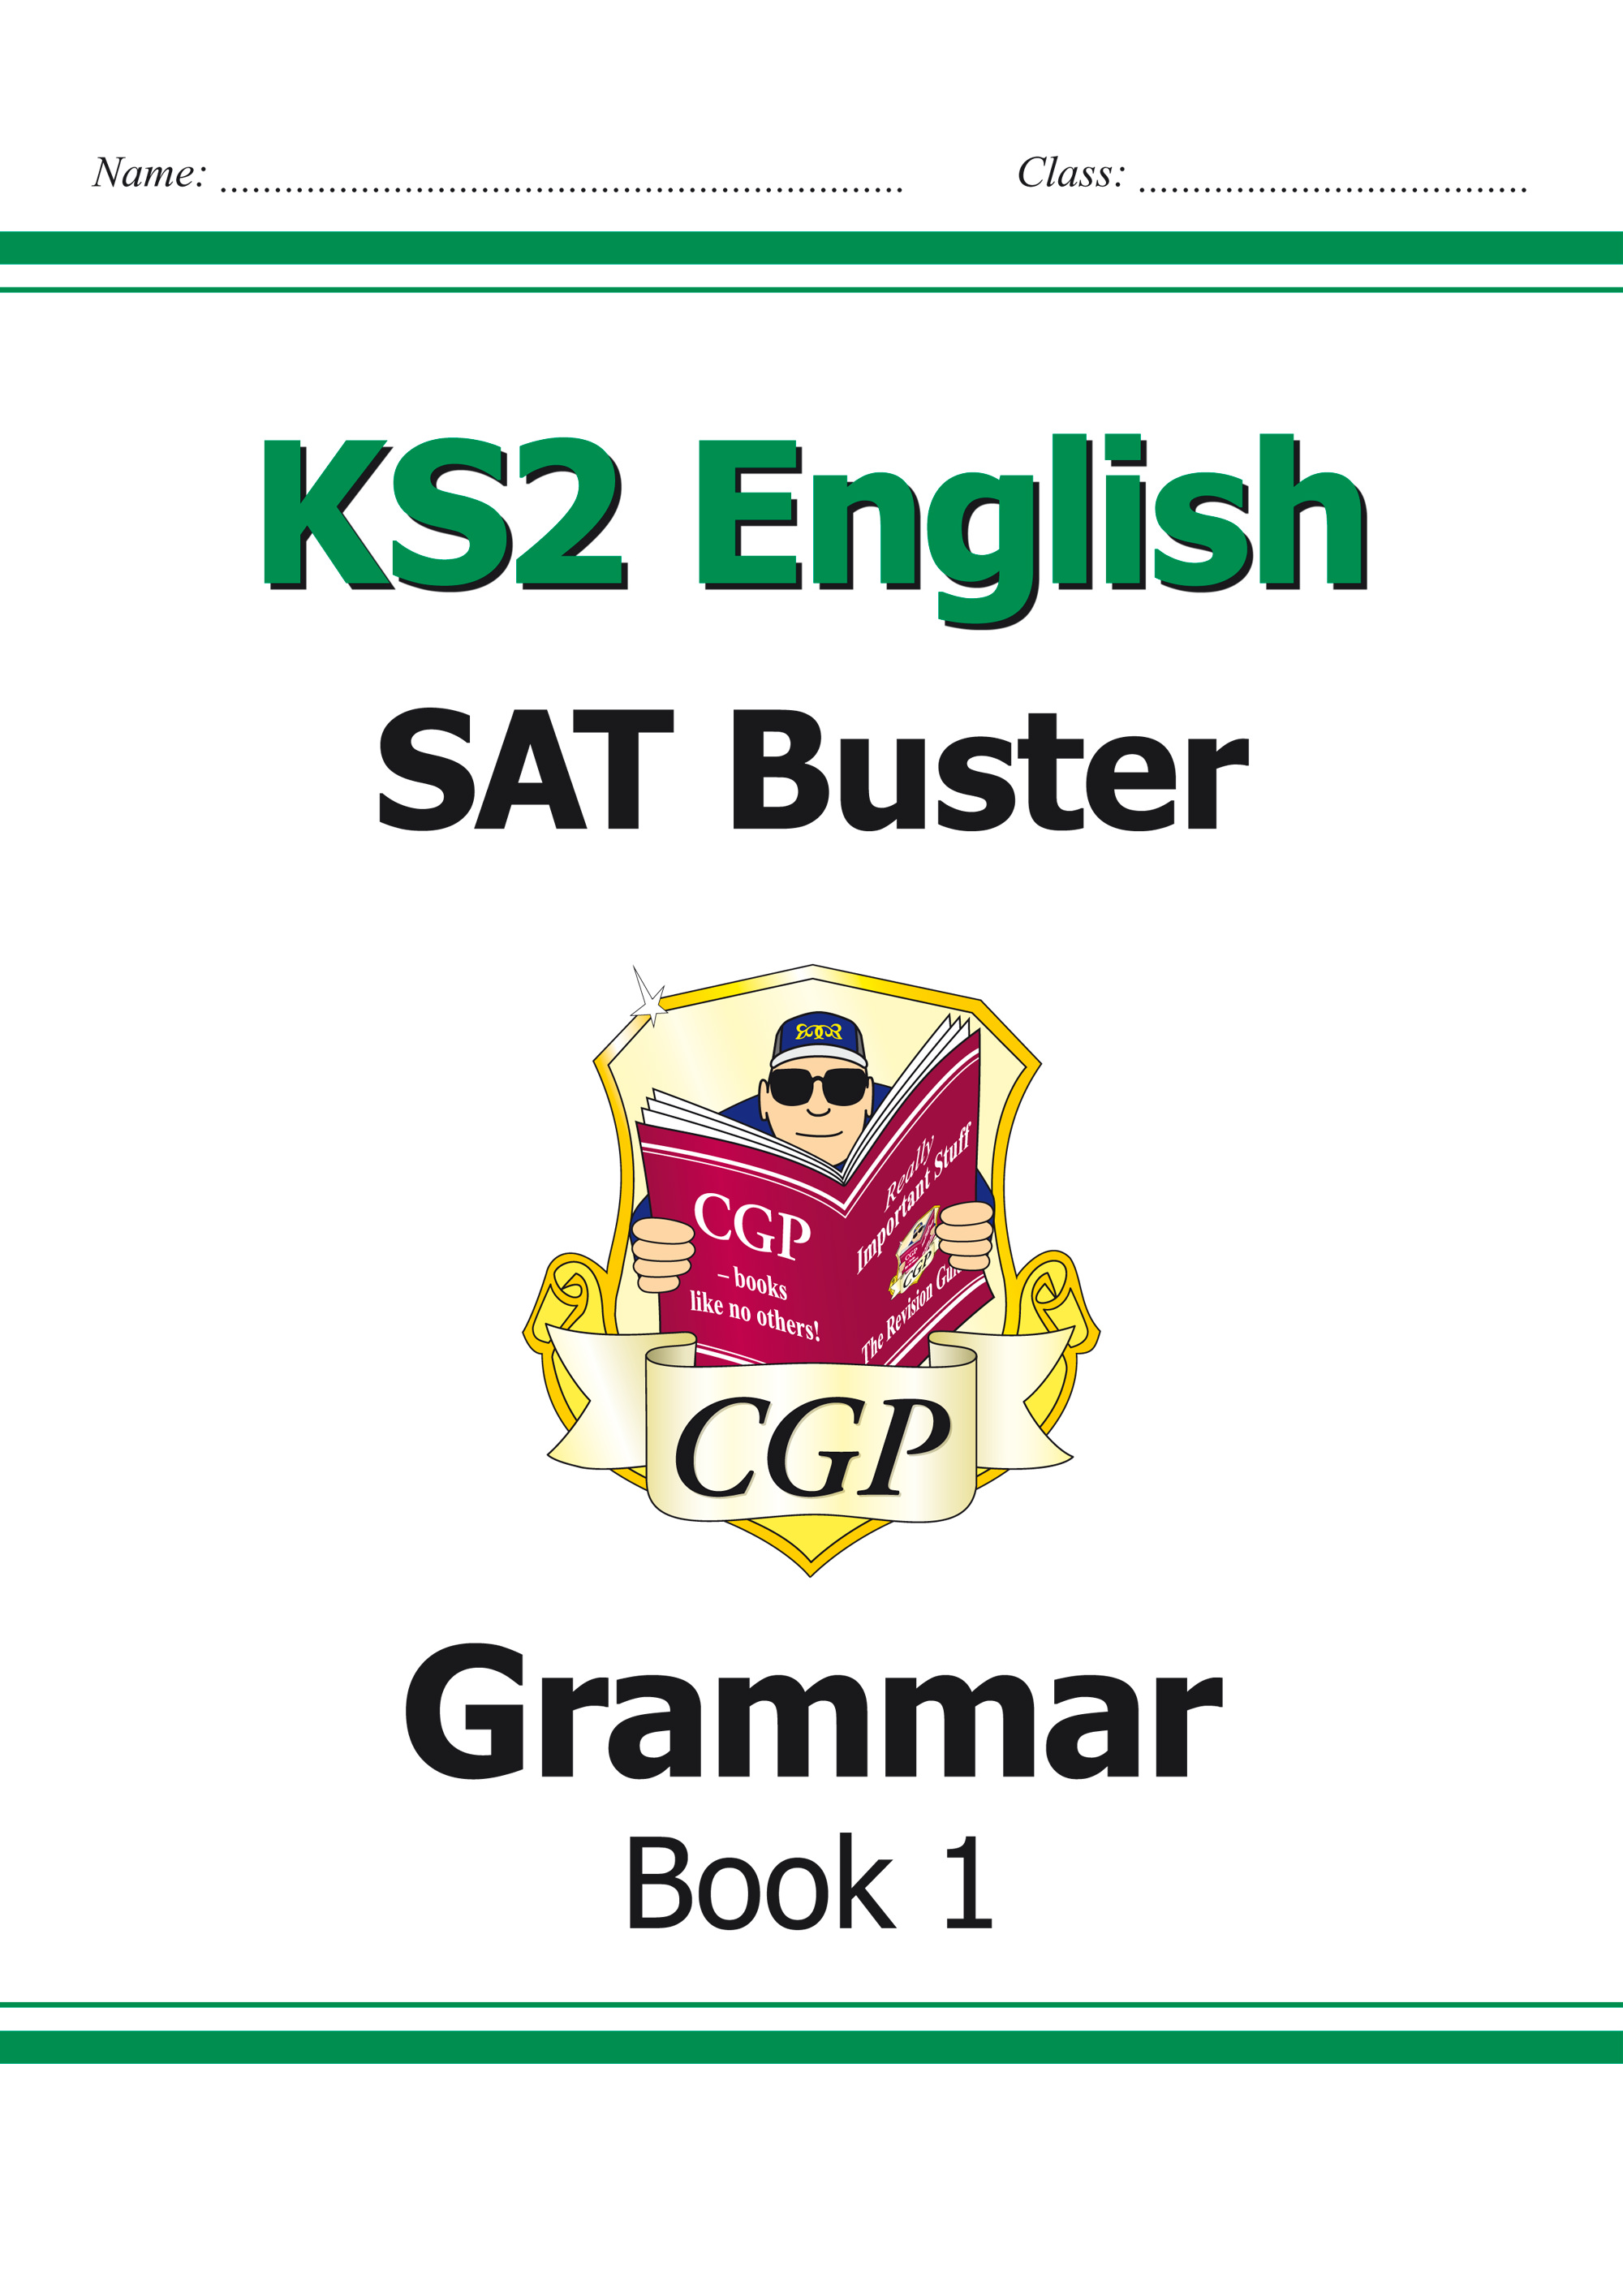 E6G22 - KS2 English SAT Buster: Grammar Book 1 (for the 2019 tests)